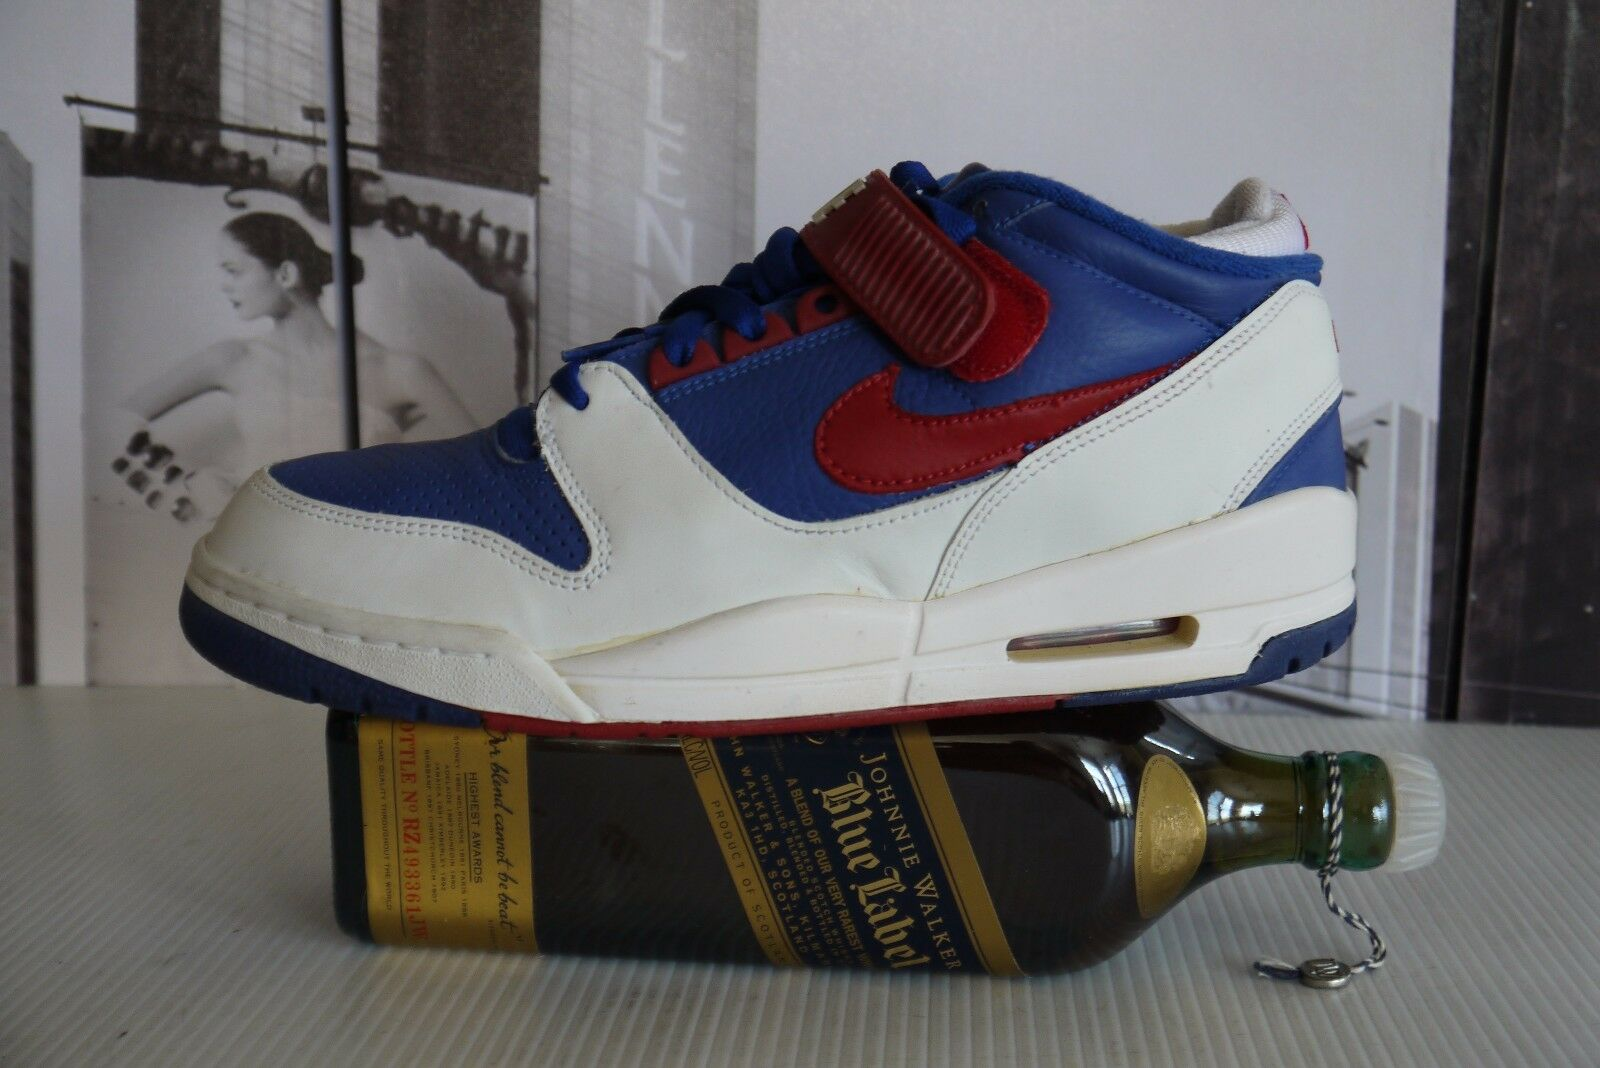 promo code ddbc0 bd8ce 2004 2004 2004 NIKE AIR REVOLUTION MID uomo US 9.5 EU 43 Must Have Leather  9ff466